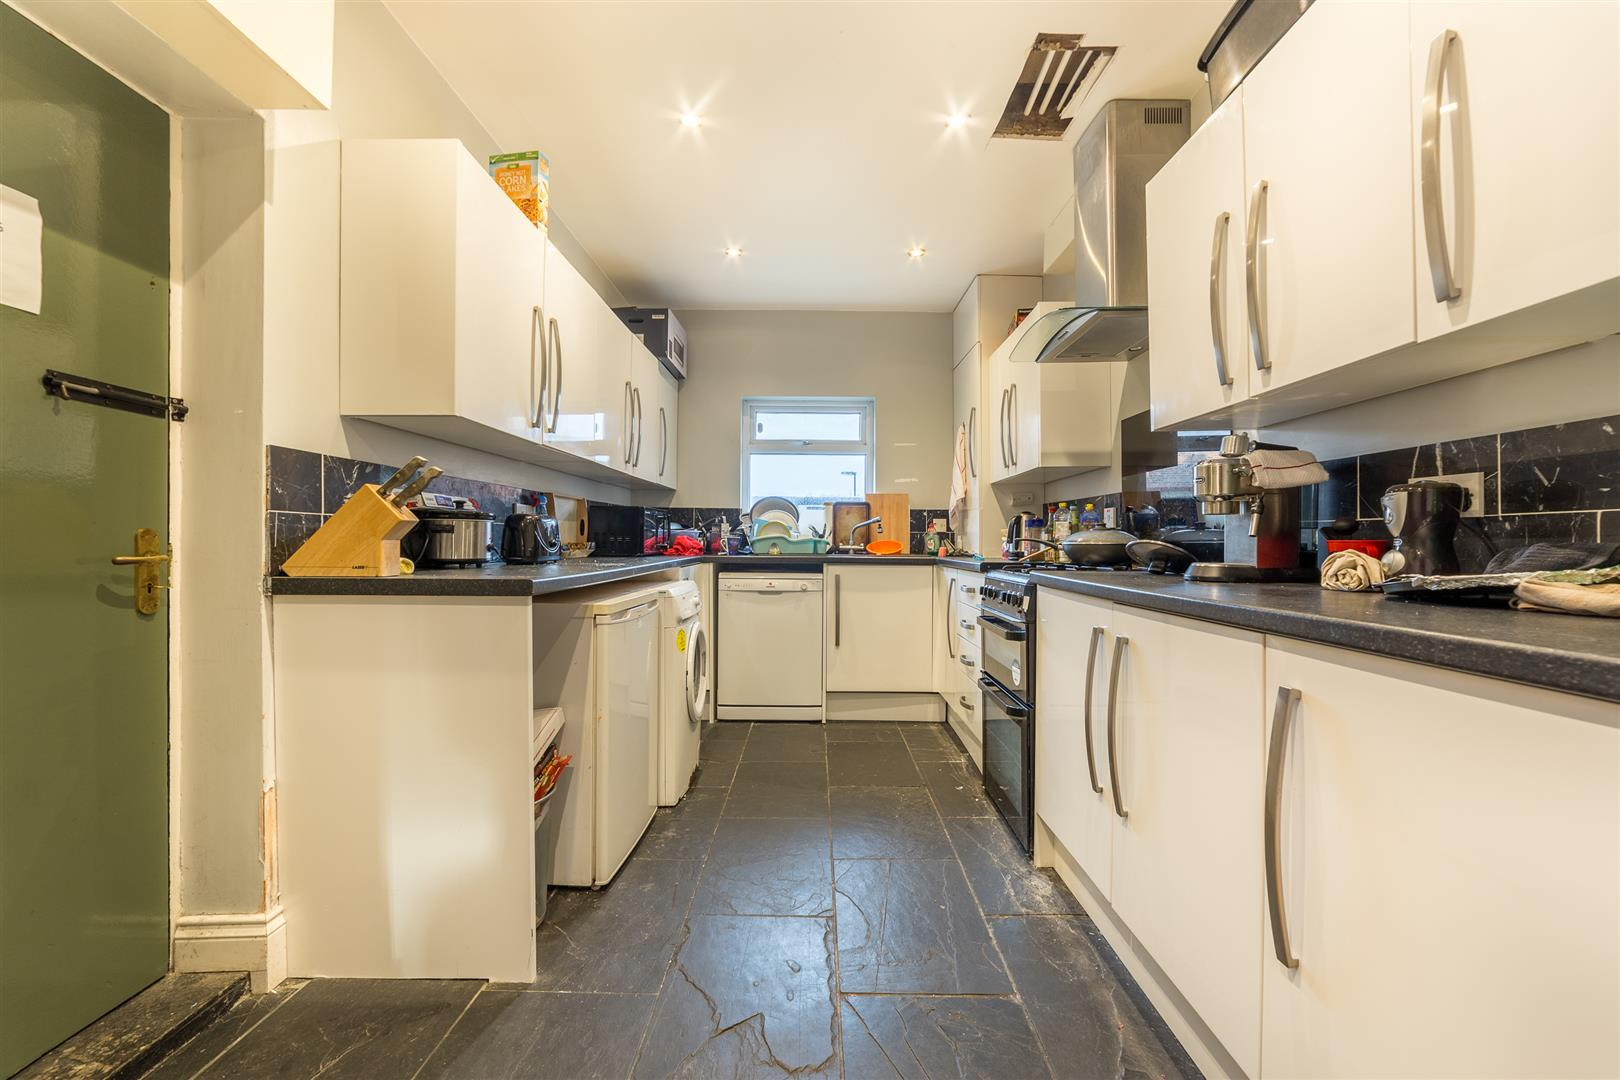 5 bed terraced house to rent in Newcastle Upon Tyne, NE4 5NL 2